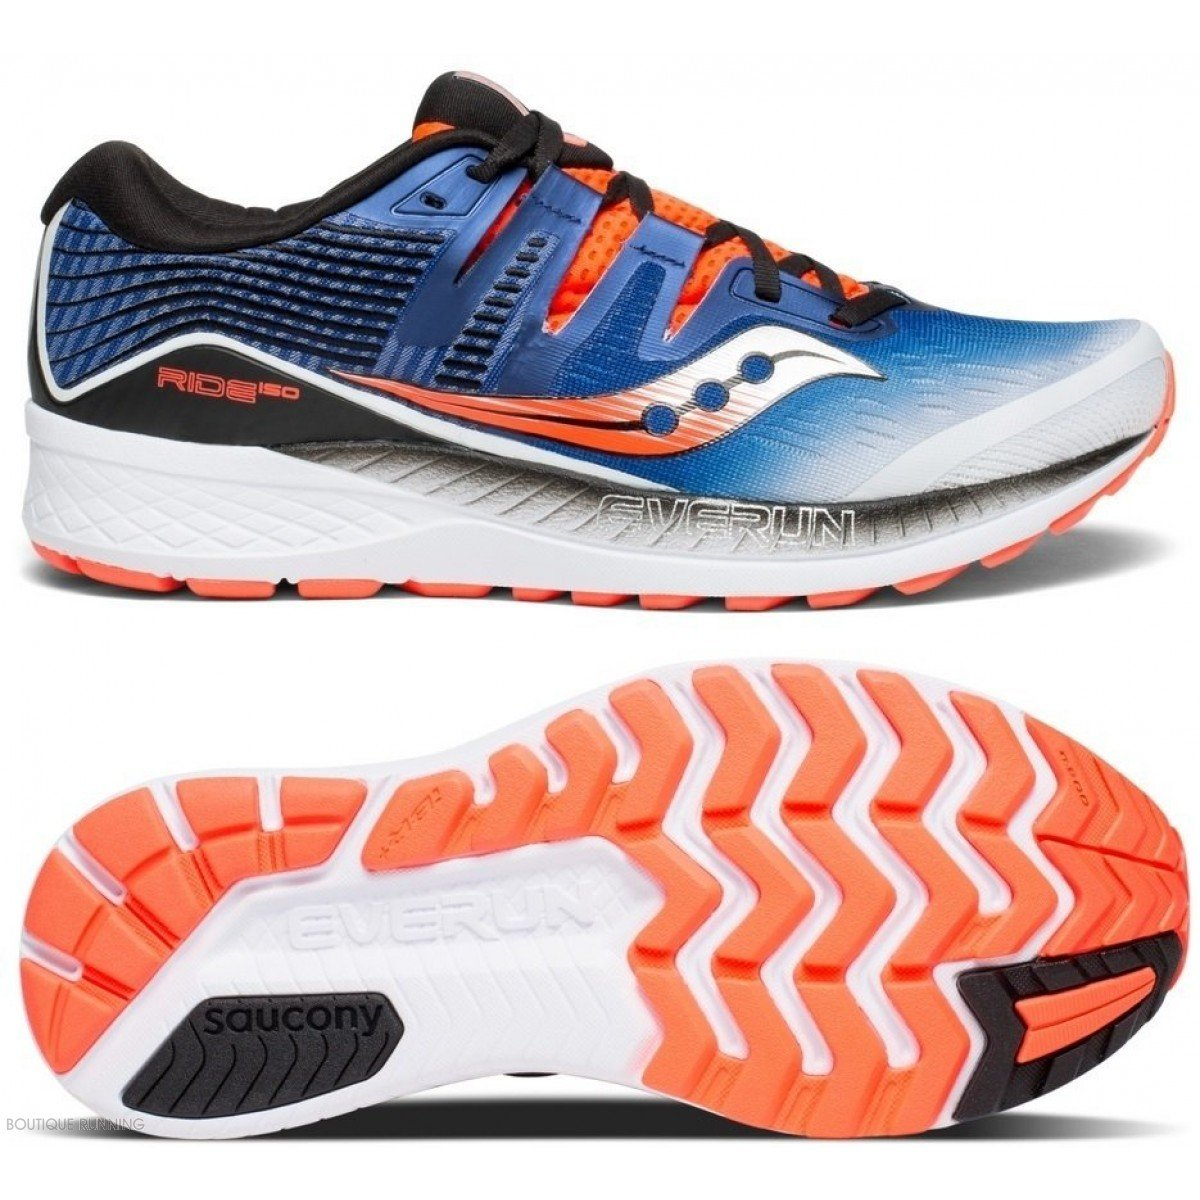 Saucony S20444 De Running Ride Iso 35 Hommes Pour Chaussures wn08OPk